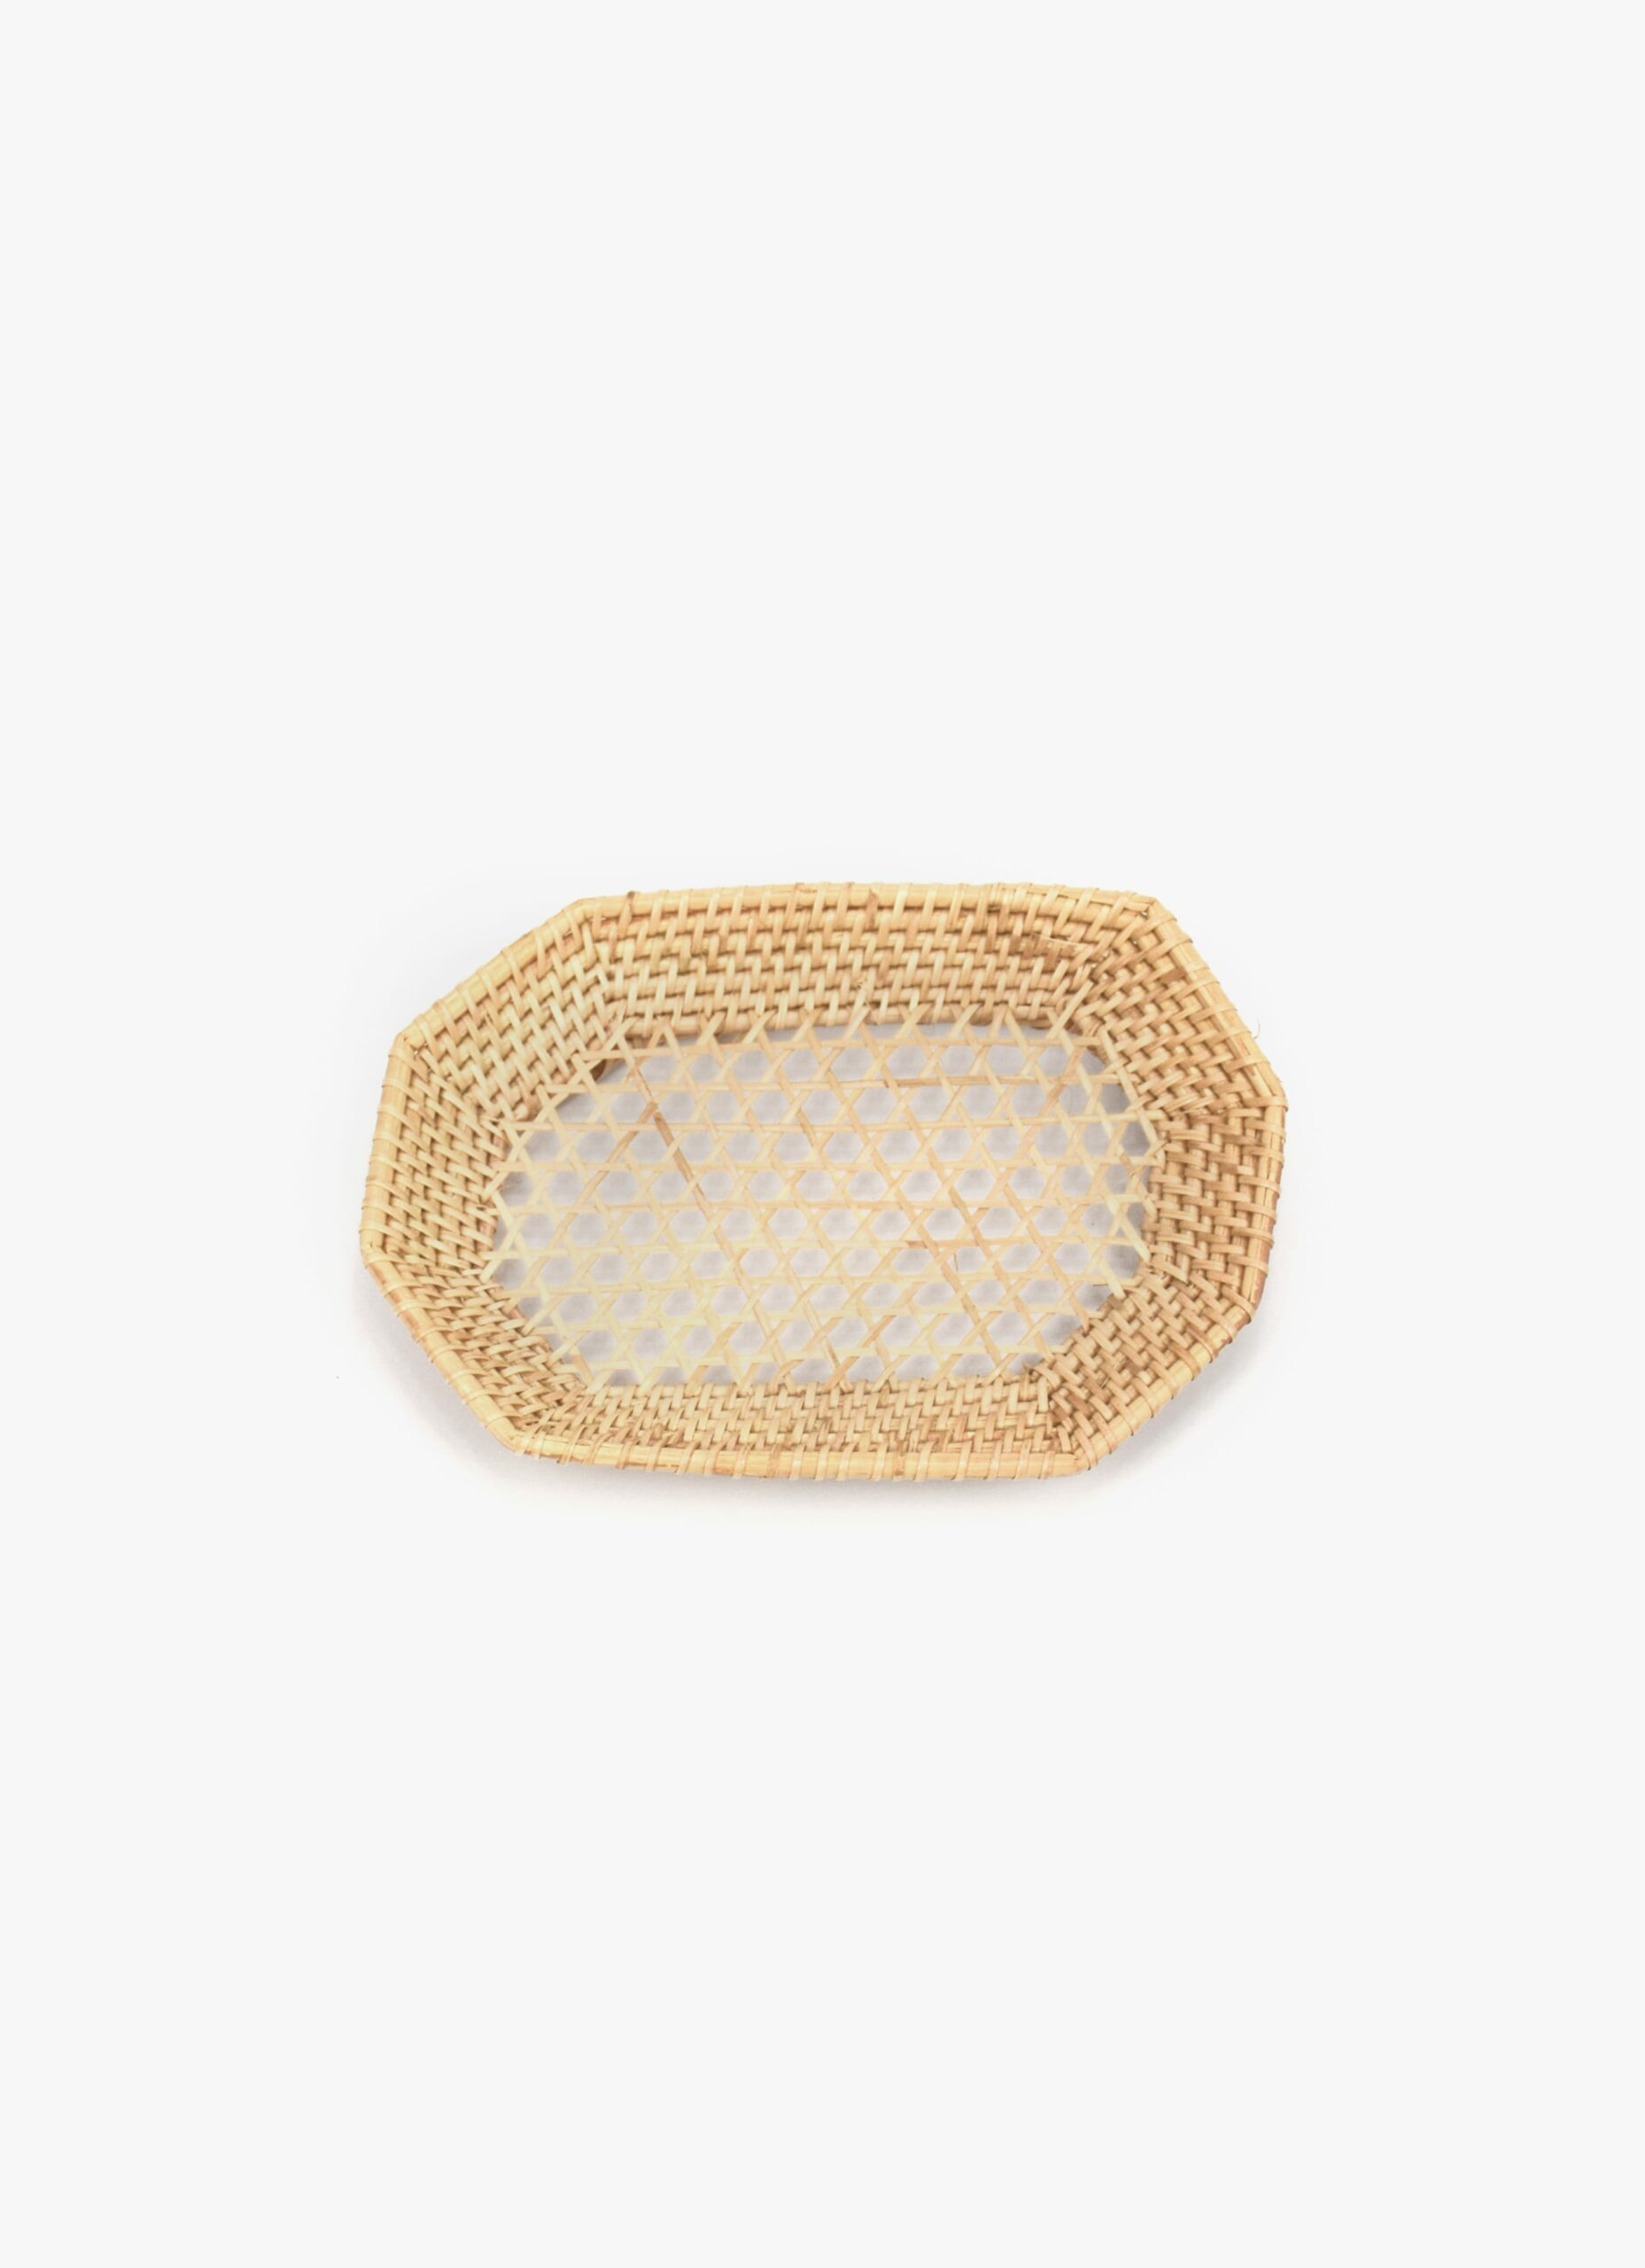 Olive and Iris - Dianella - Handwoven Rattan Tray